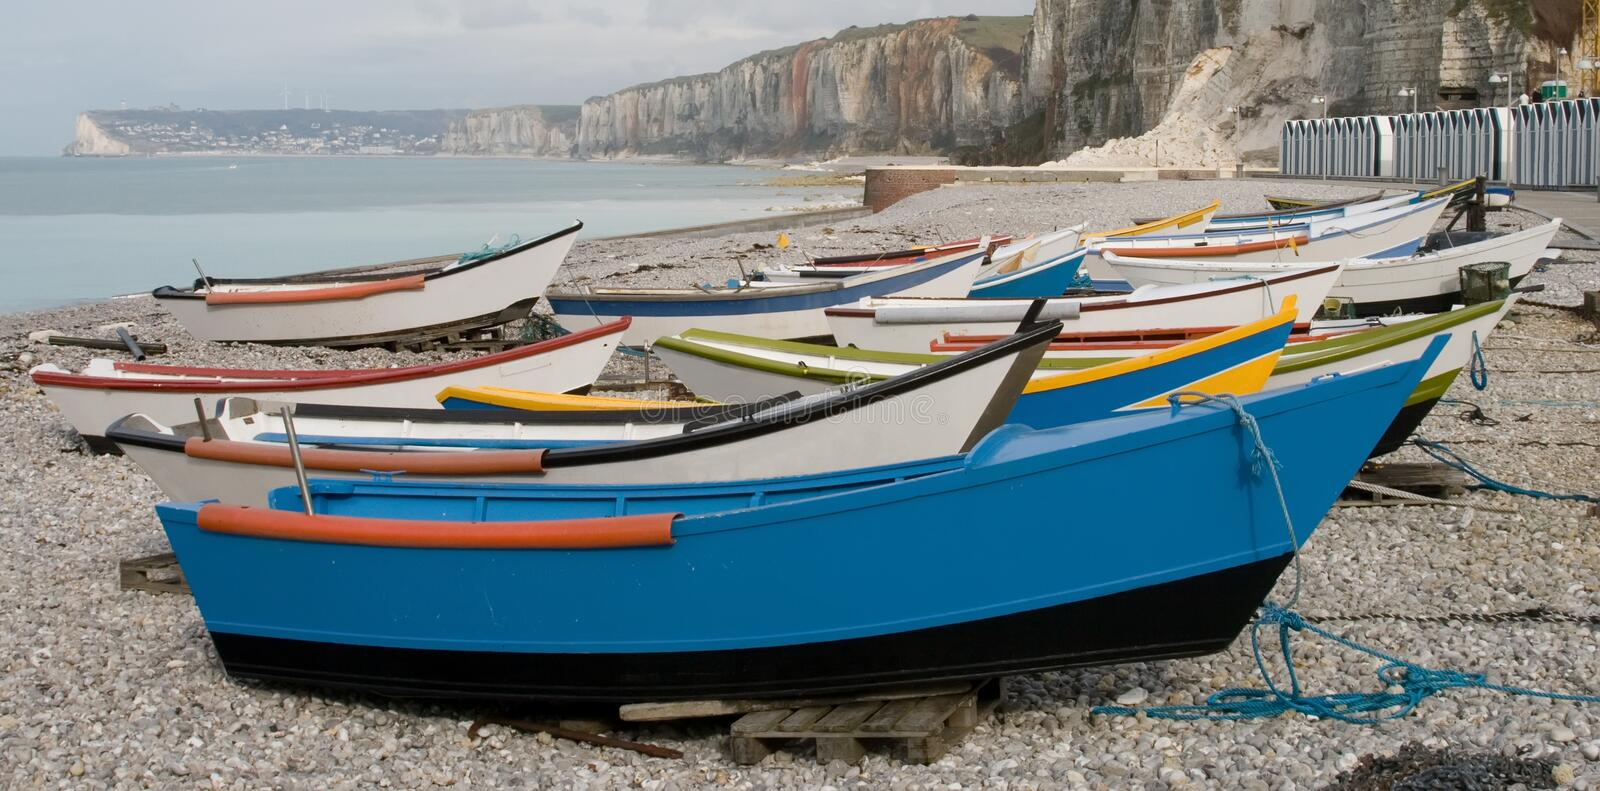 Boats on beach. Small boats lying on the beach in Yport, France stock photography